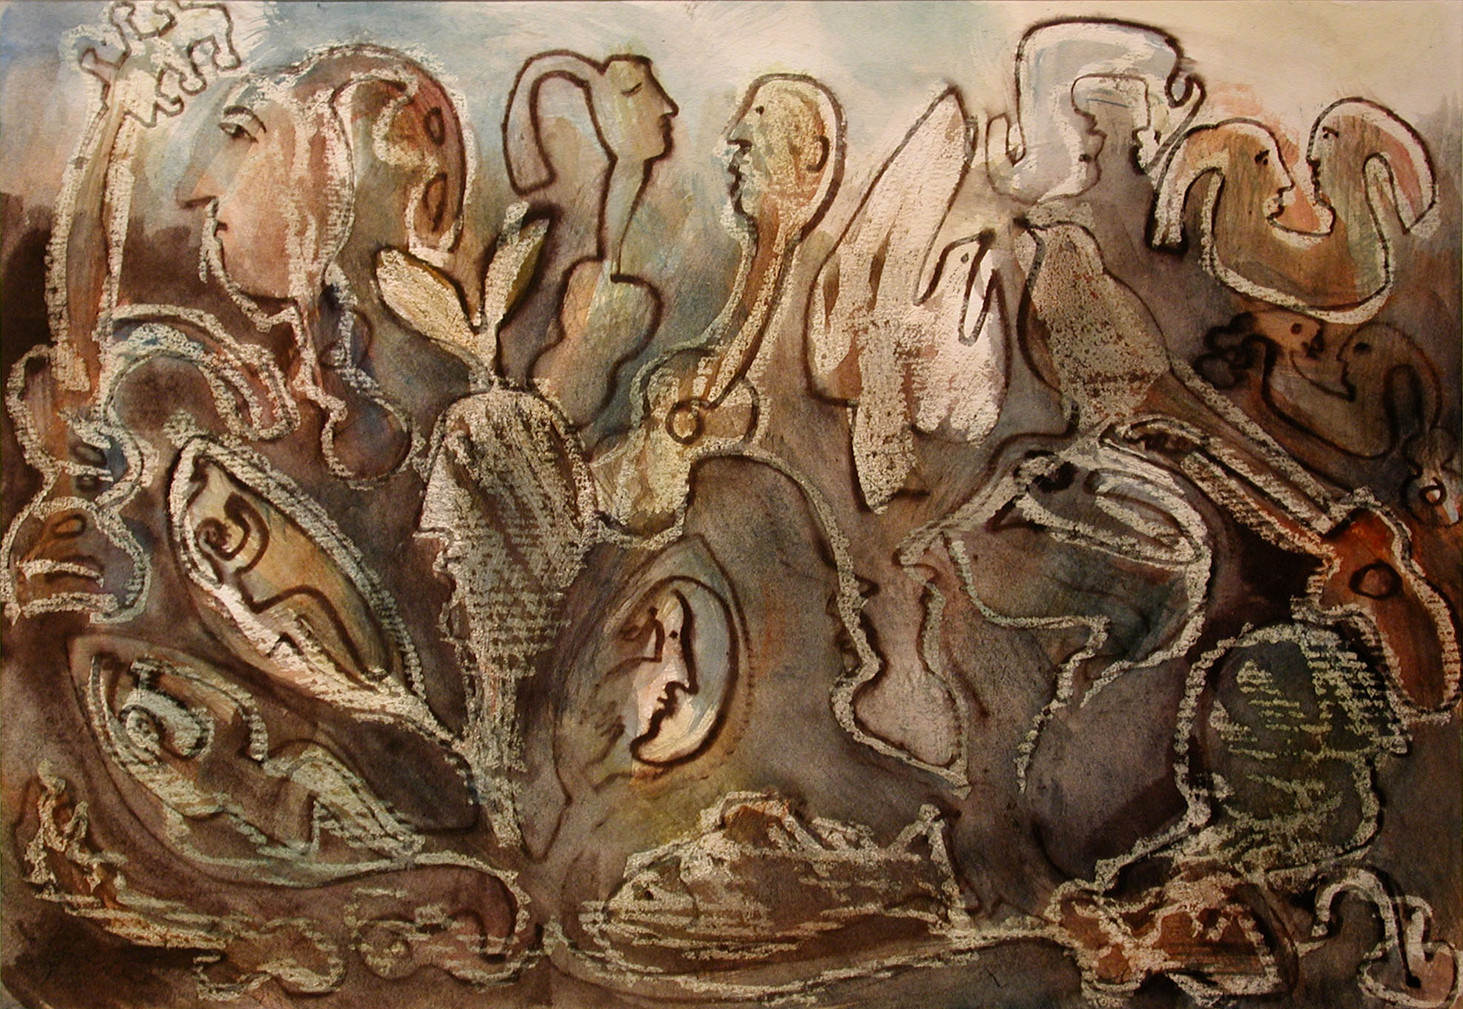 02_Guitar People, 2001, Aquarell u. Tint